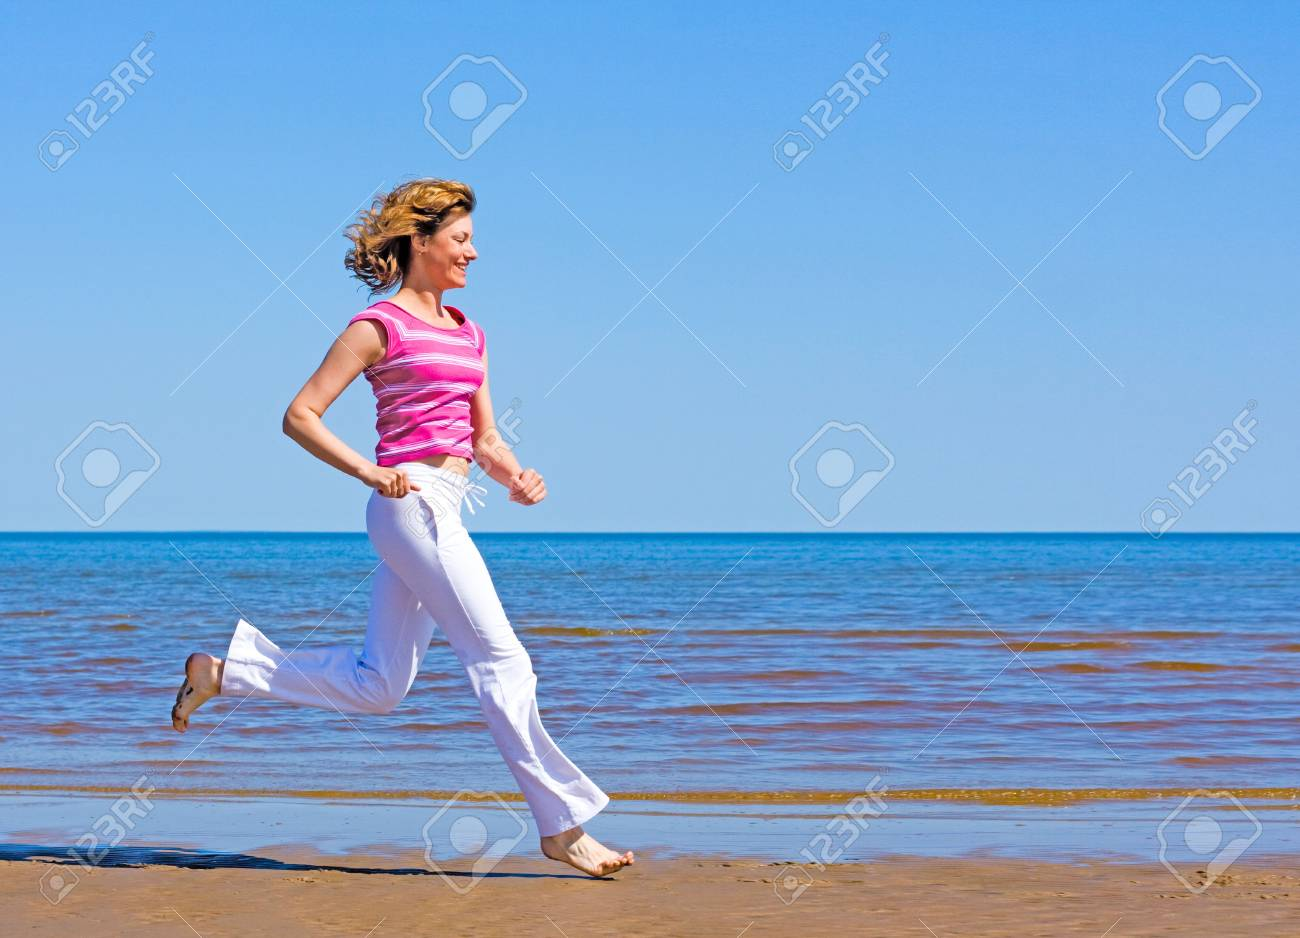 runner Stock Photo - 3268669